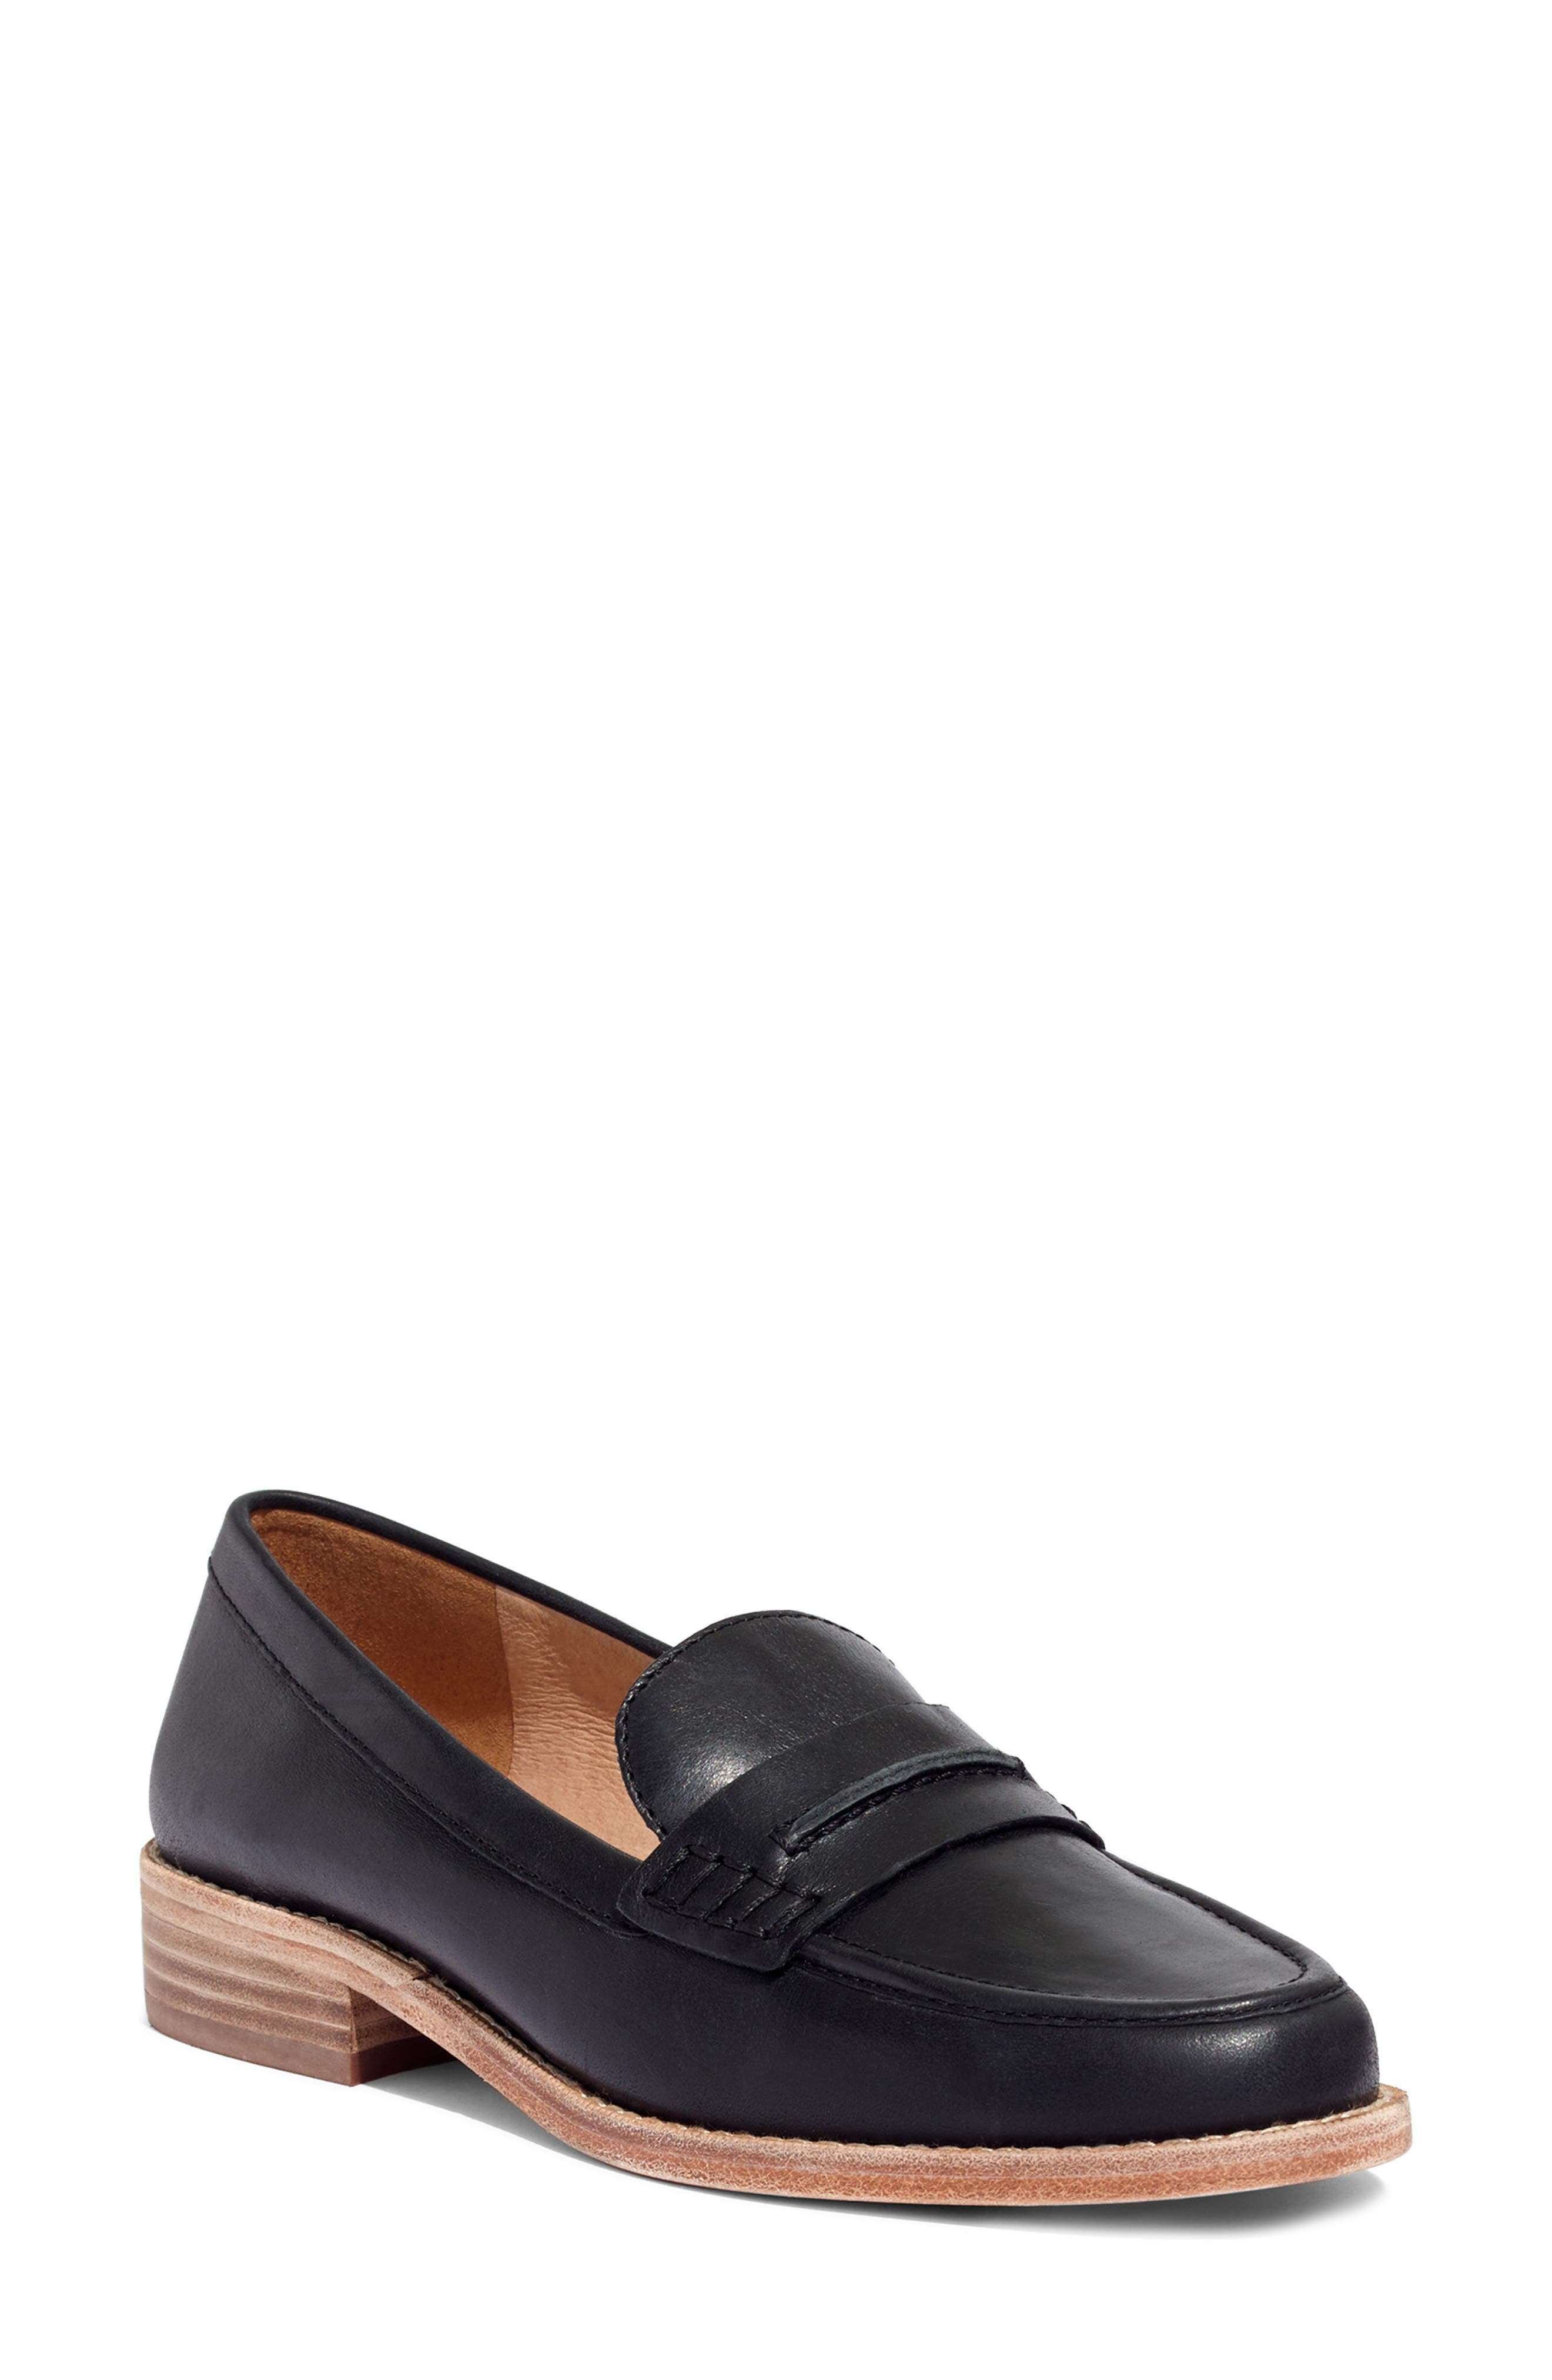 MADEWELL The Elinor Loafer, Main, color, BLACK LEATHER